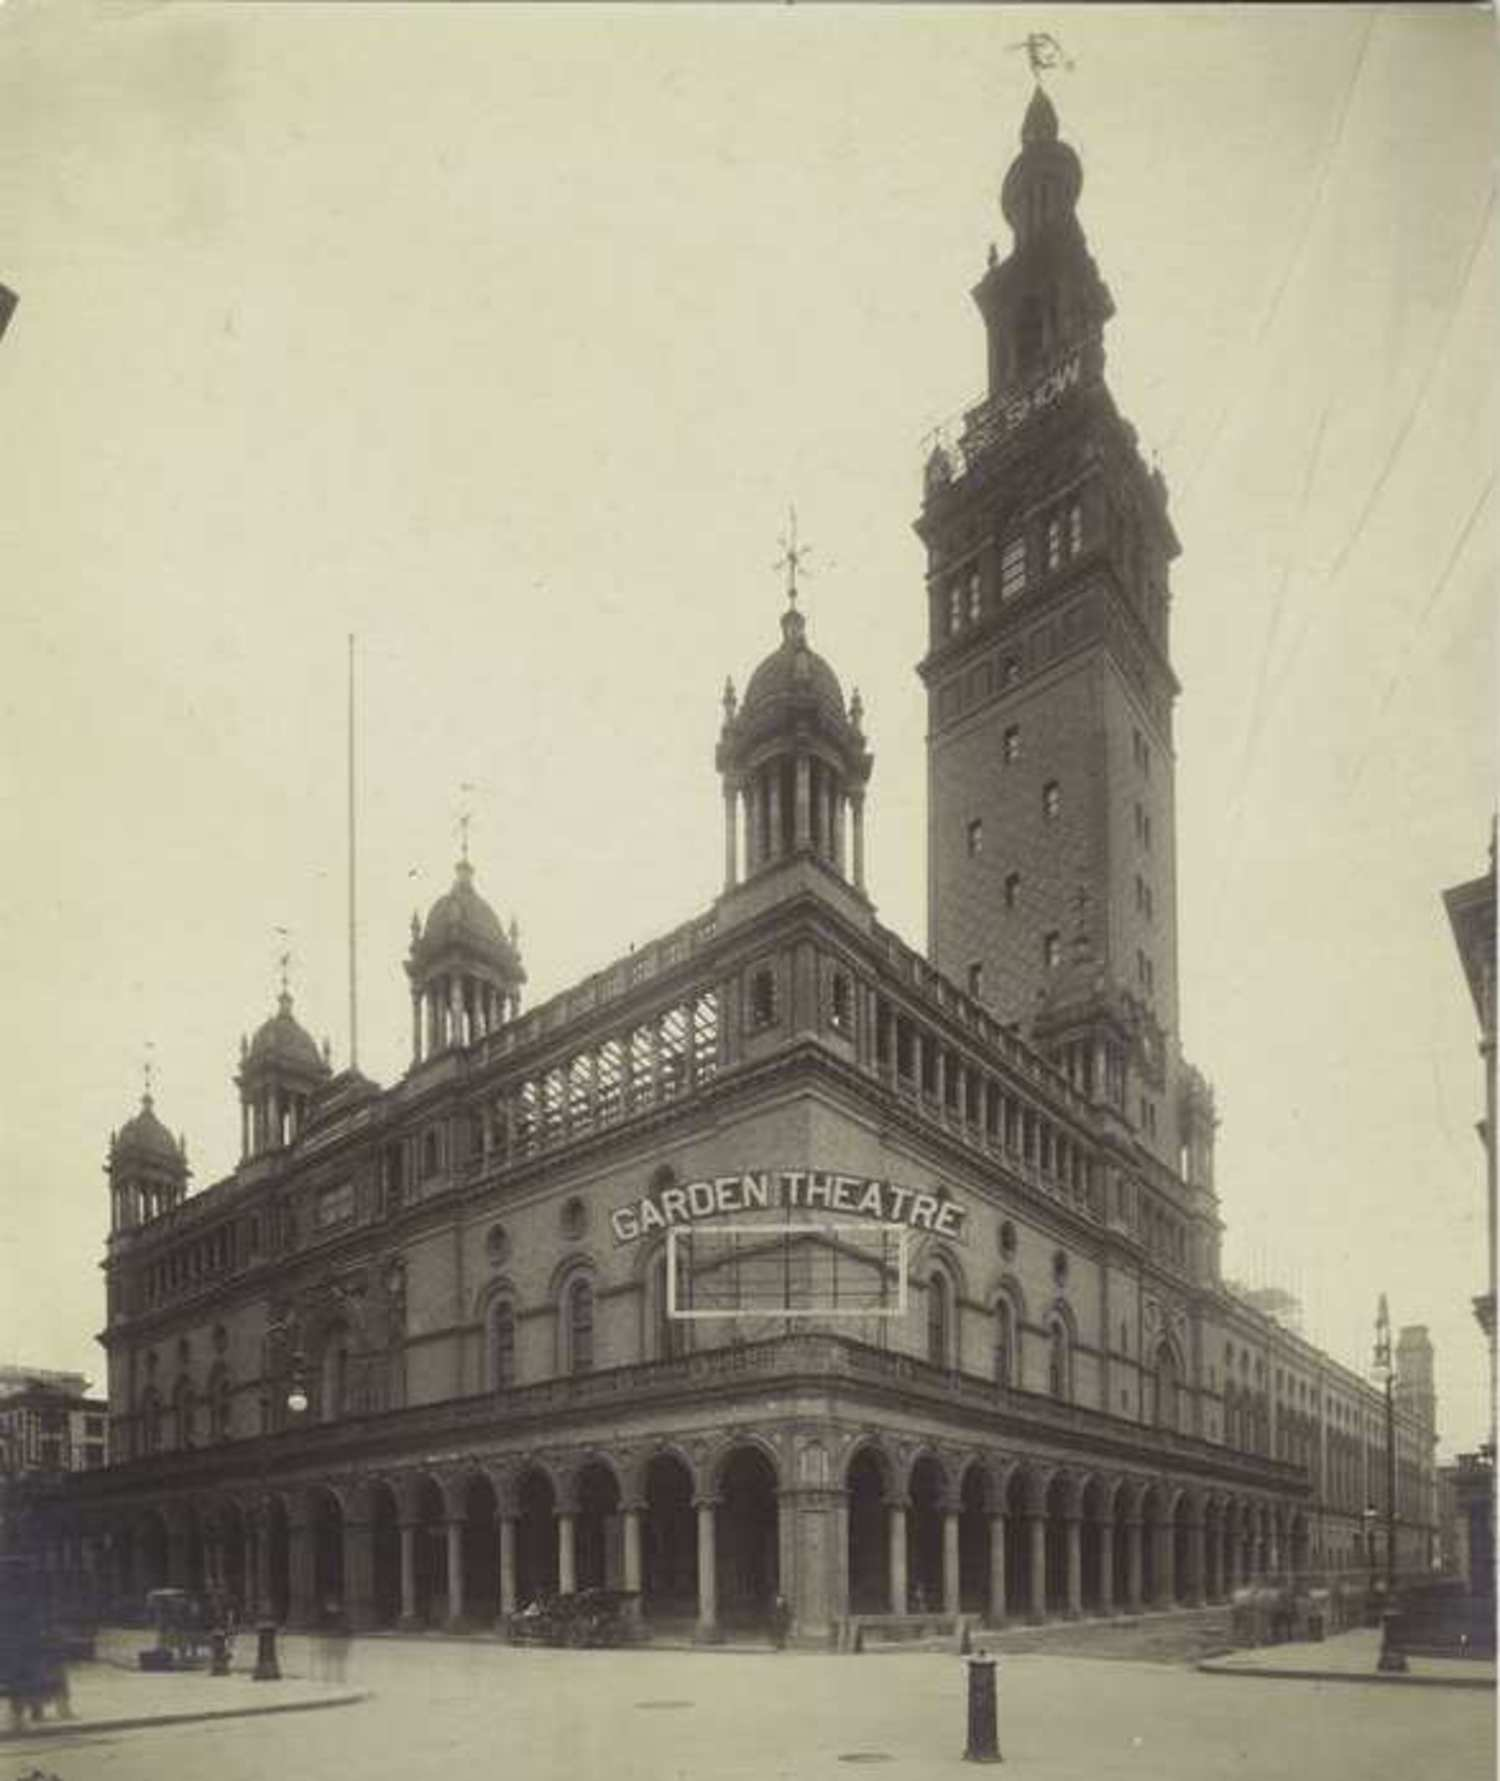 Madison Square Garden II, designed by Stanford White, studded with towers, weathervanes, grand arches and other Moorish touches.